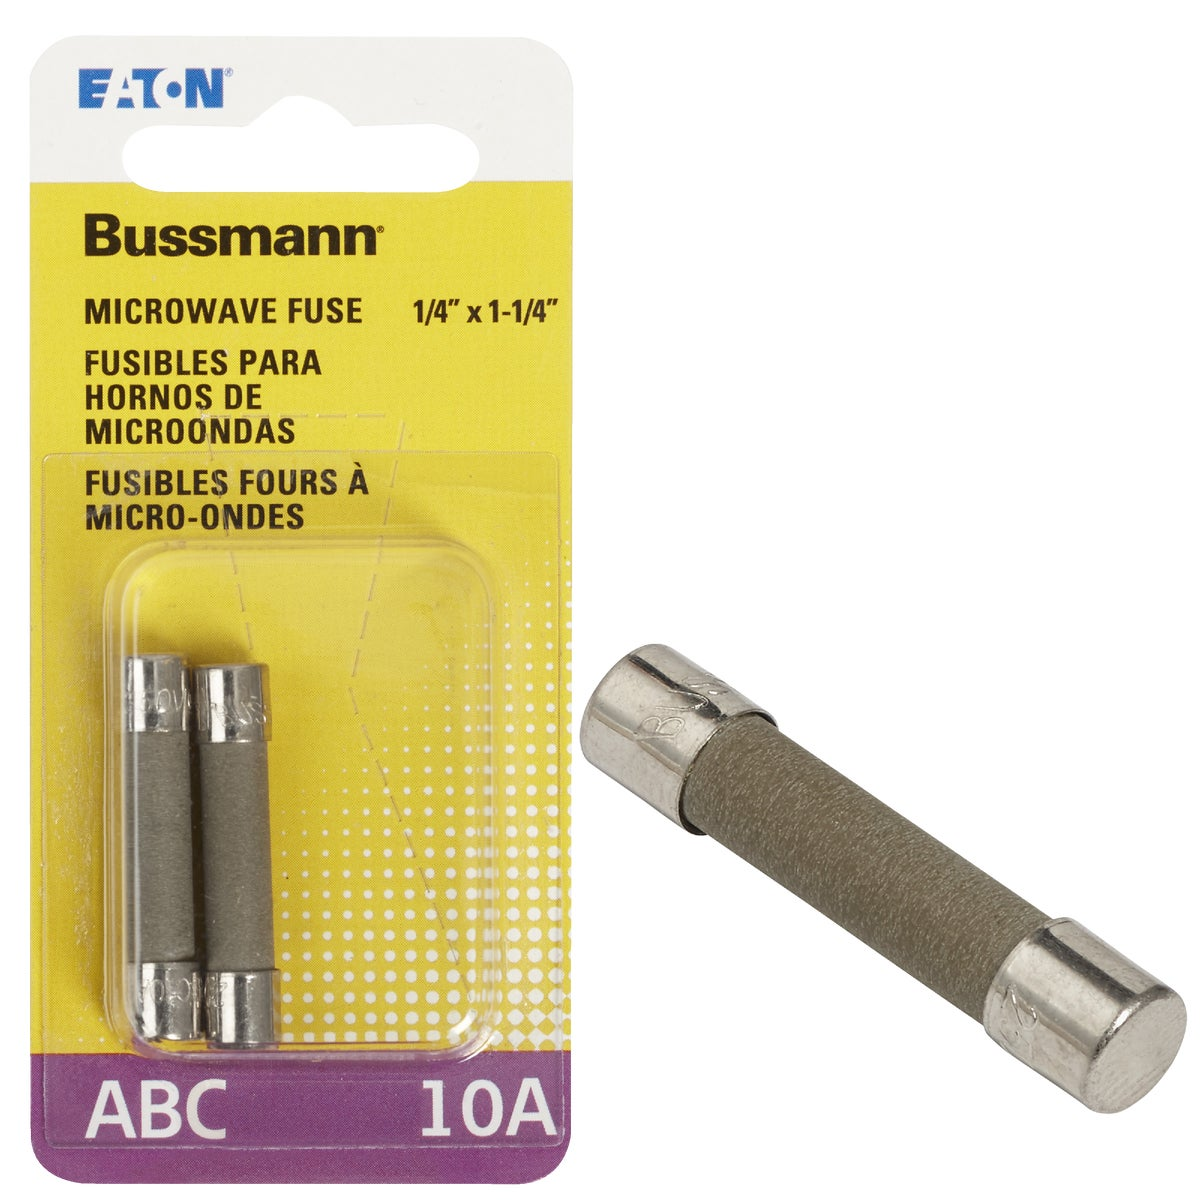 2CD 10A ELECTRONIC FUSE - BP/ABC-10 by Bussmann Cooper